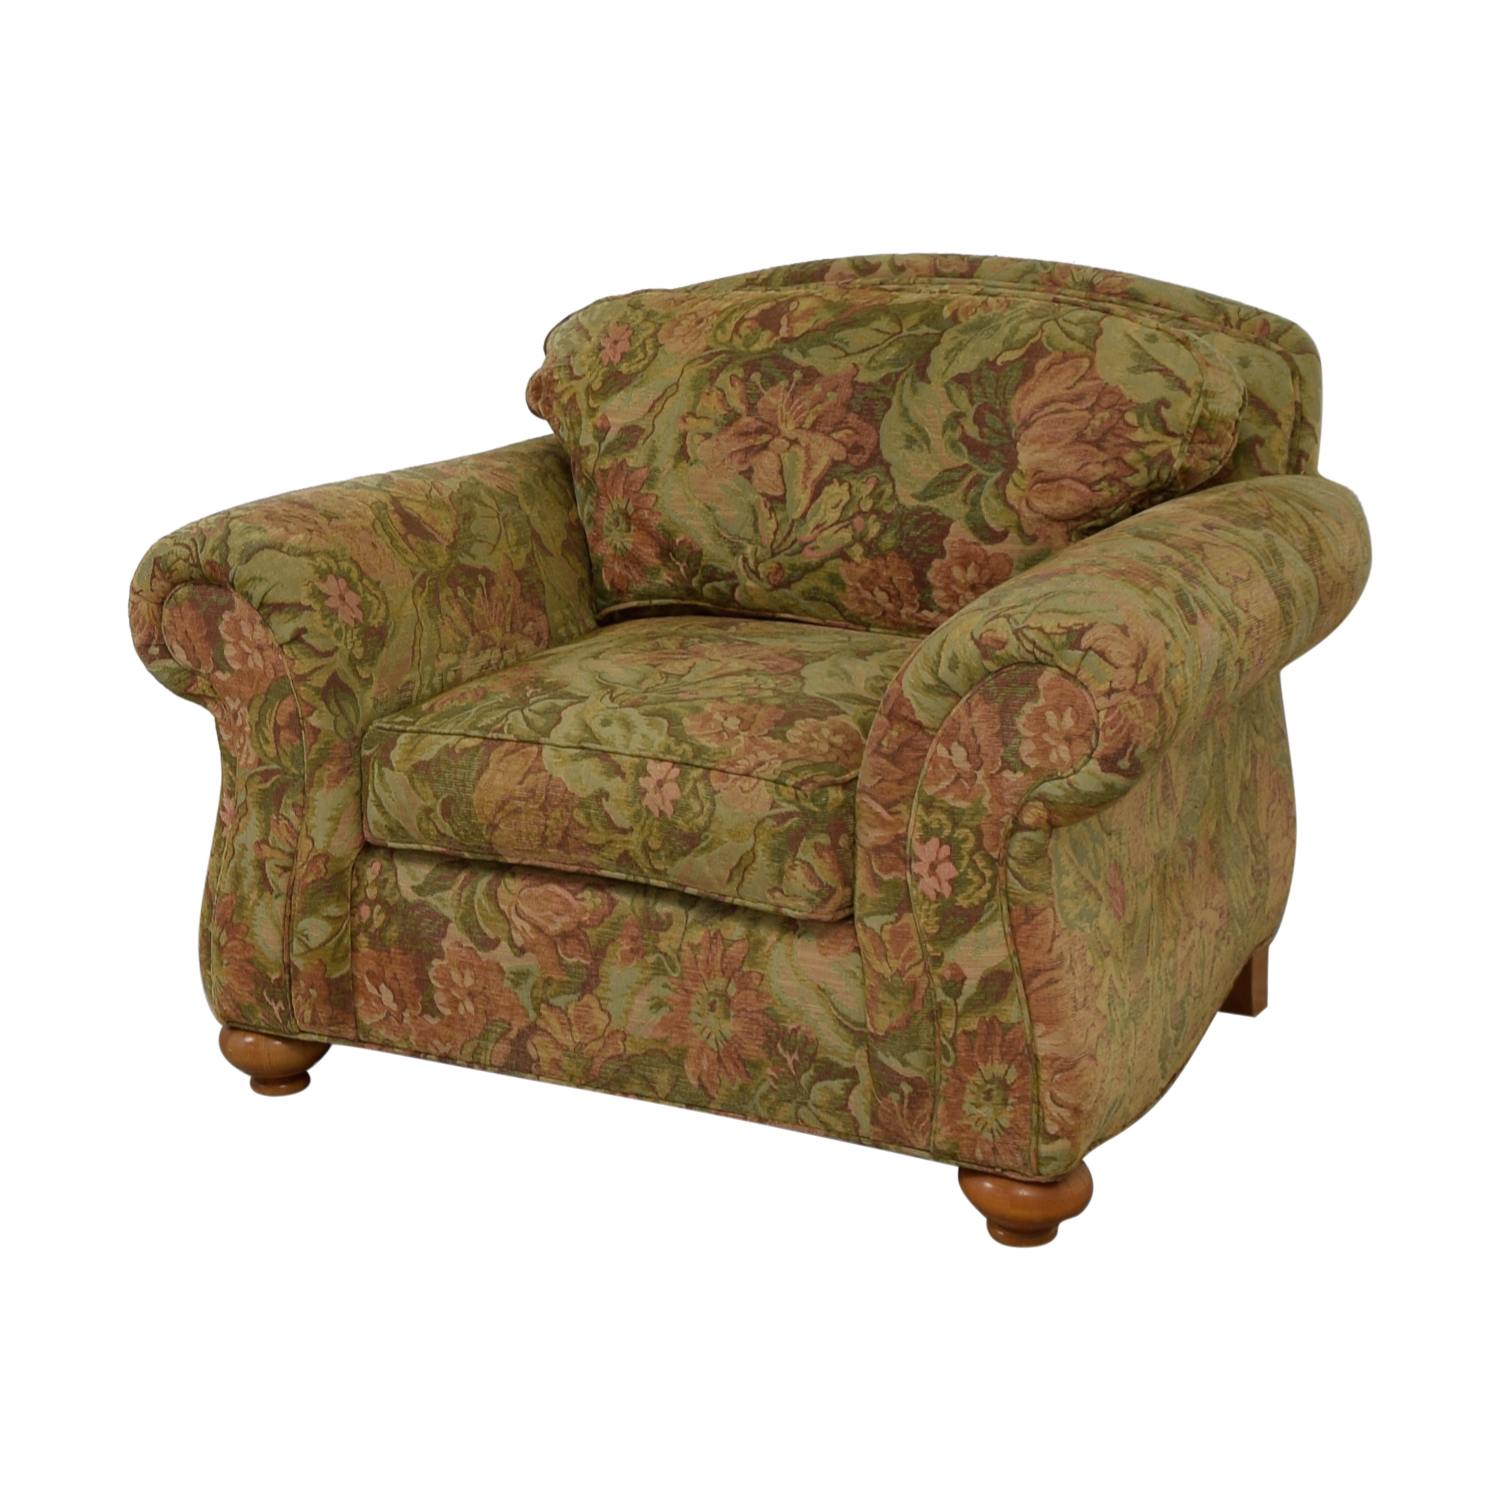 Ethan Allen Ethan Allen Flower Fabric Lounge Chair MULTI-COLOR